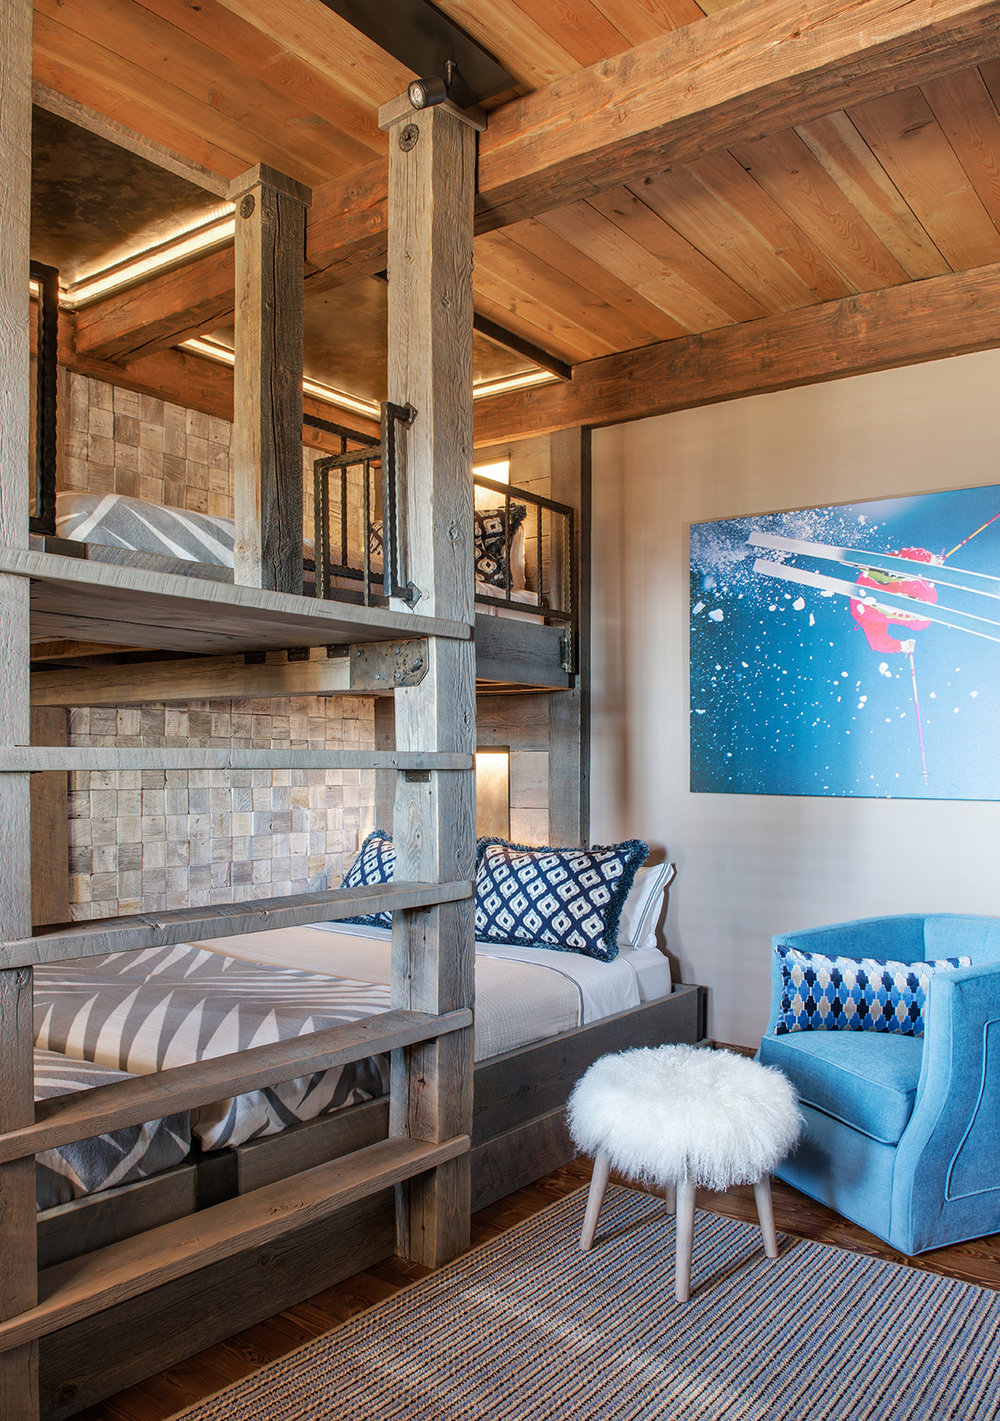 Another fun bunk room perfect for the ski house.  I love the chair, the art, the custom bunkbed.... well, I just love it all!